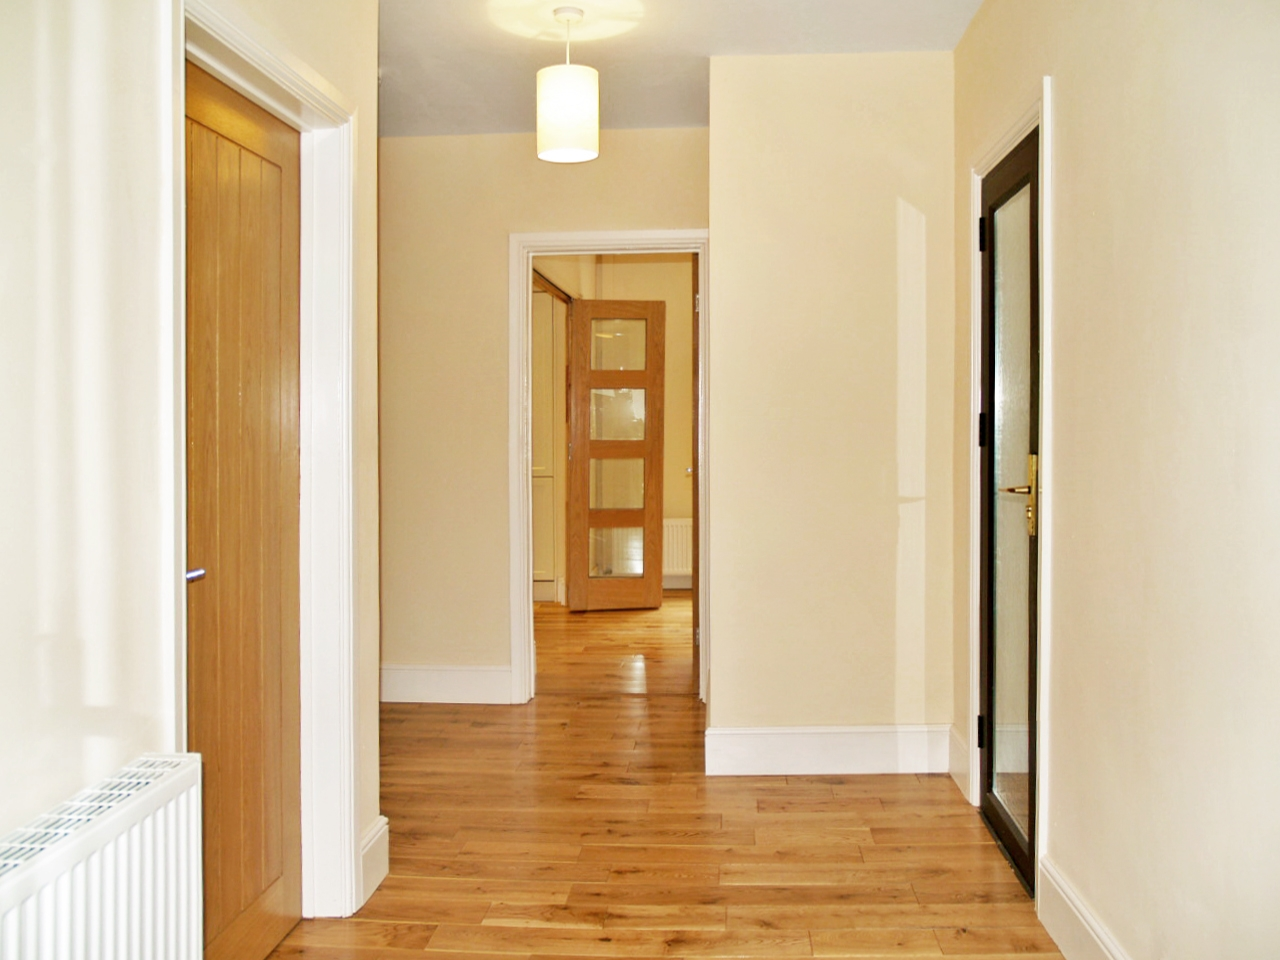 4 bedroom detached house SSTC in Solihull - photograph 3.